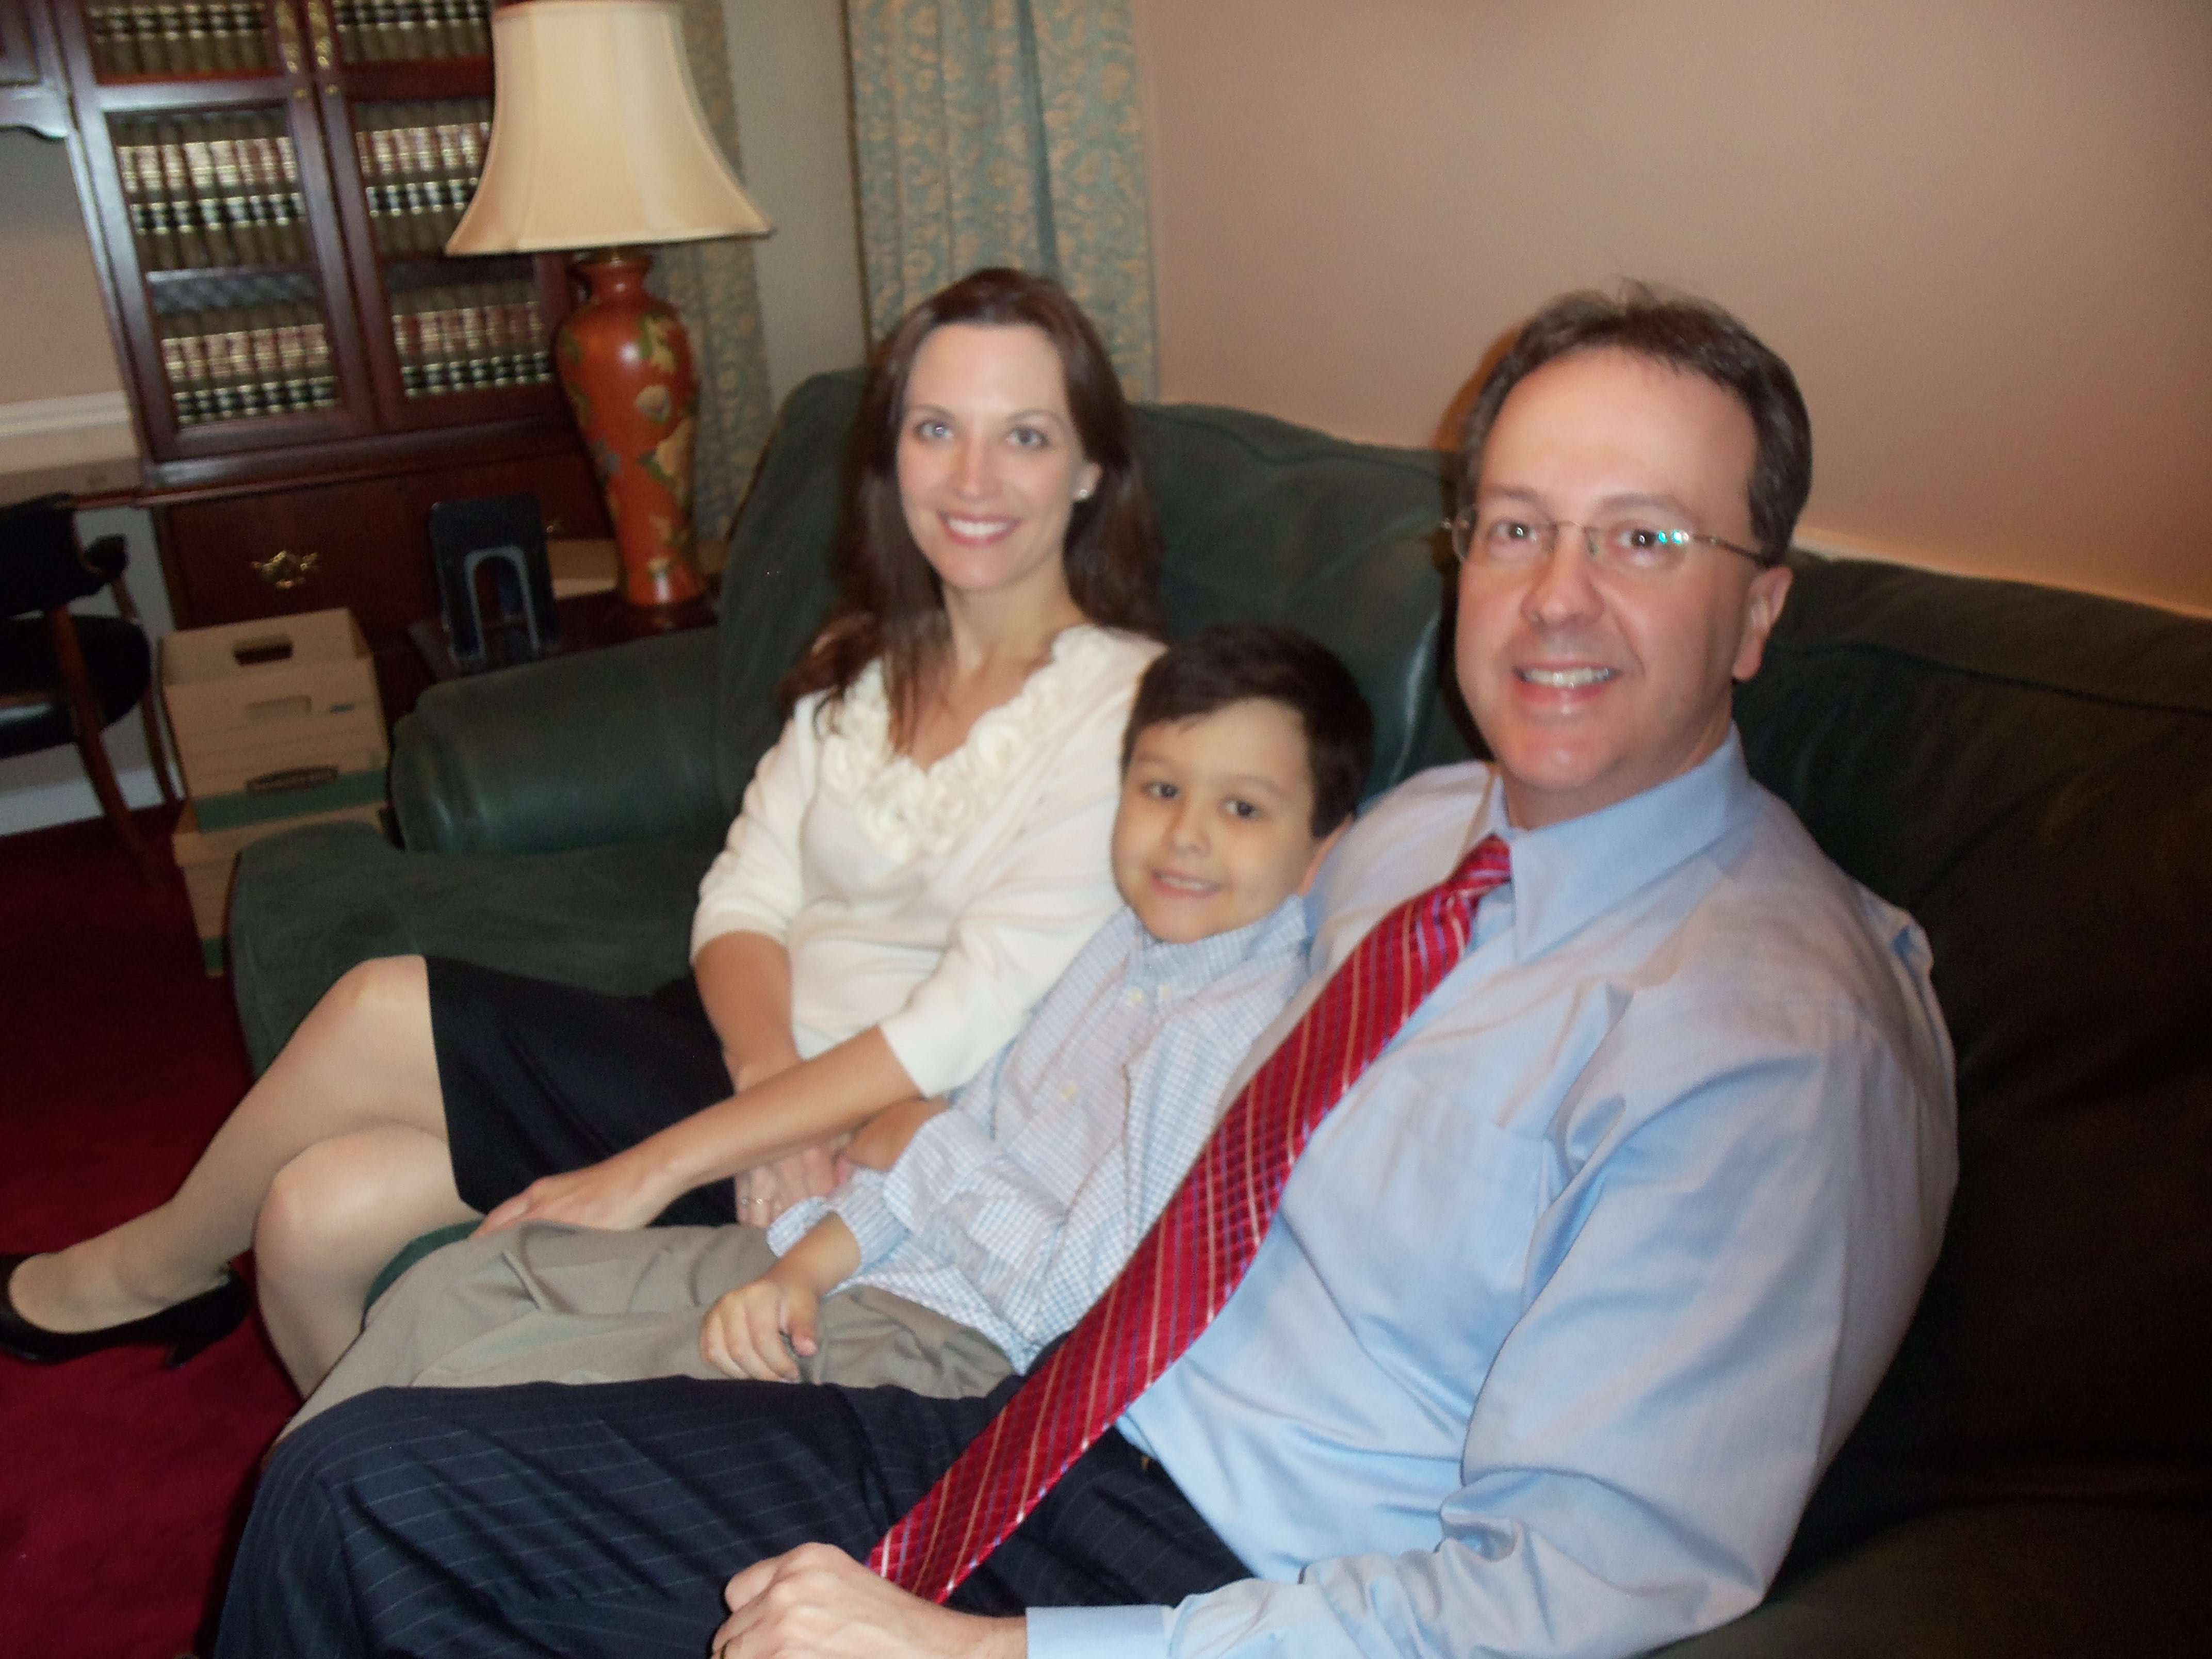 Allen Loughry sits in his new office with his son Justus and wife Kelly.